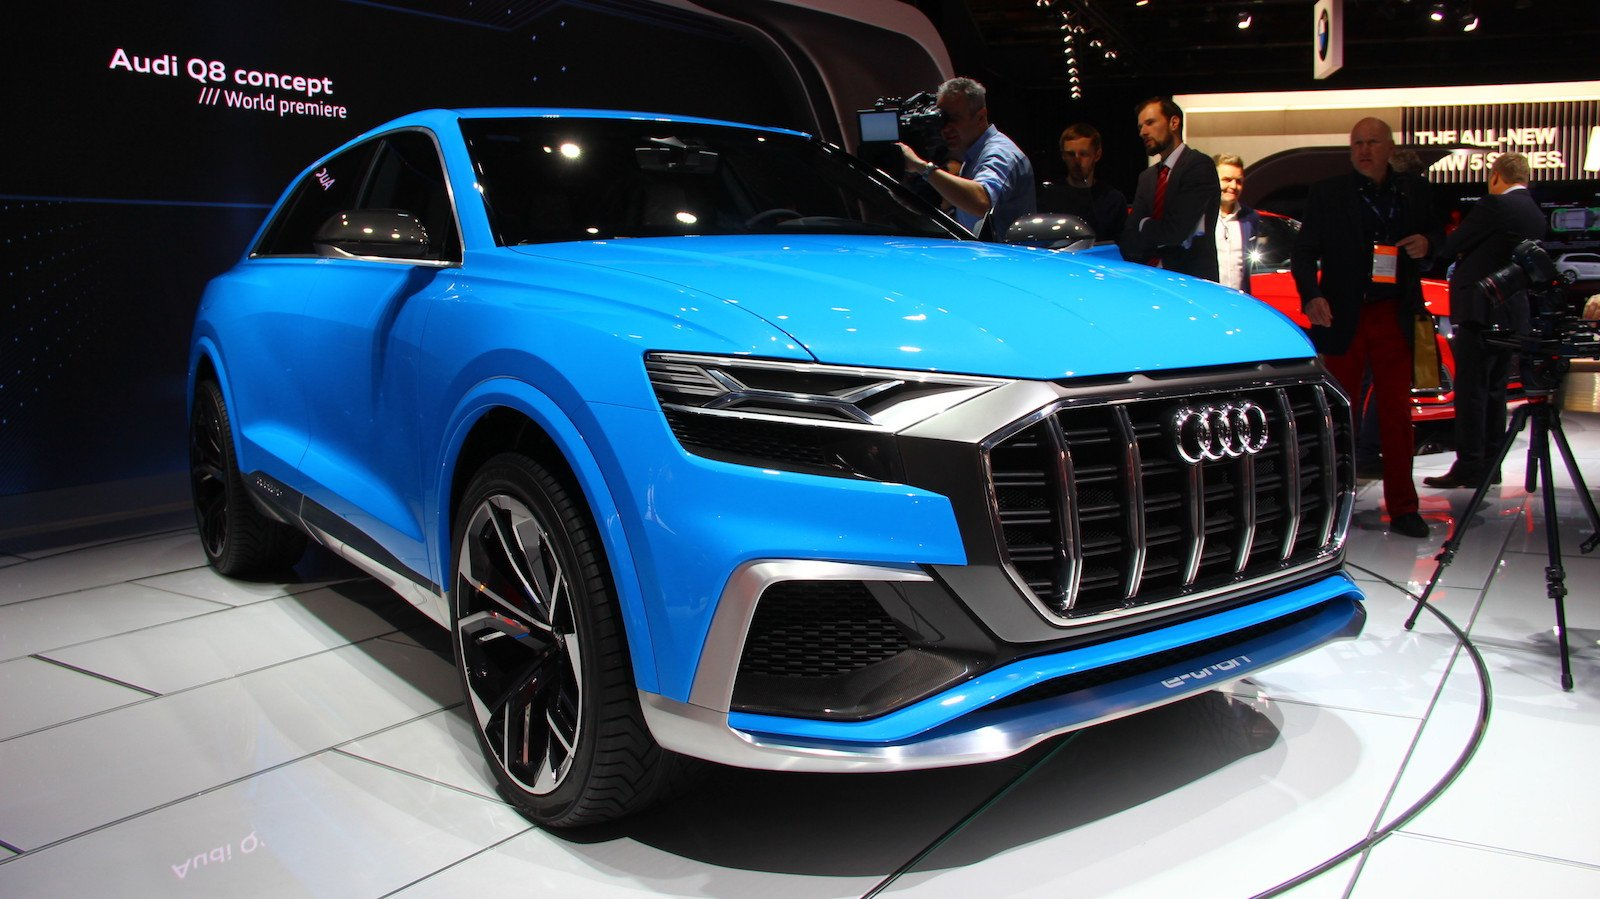 Audi Q8 Concept Jumps on the Coupe SUV Bandwagon » AutoGuide.com News